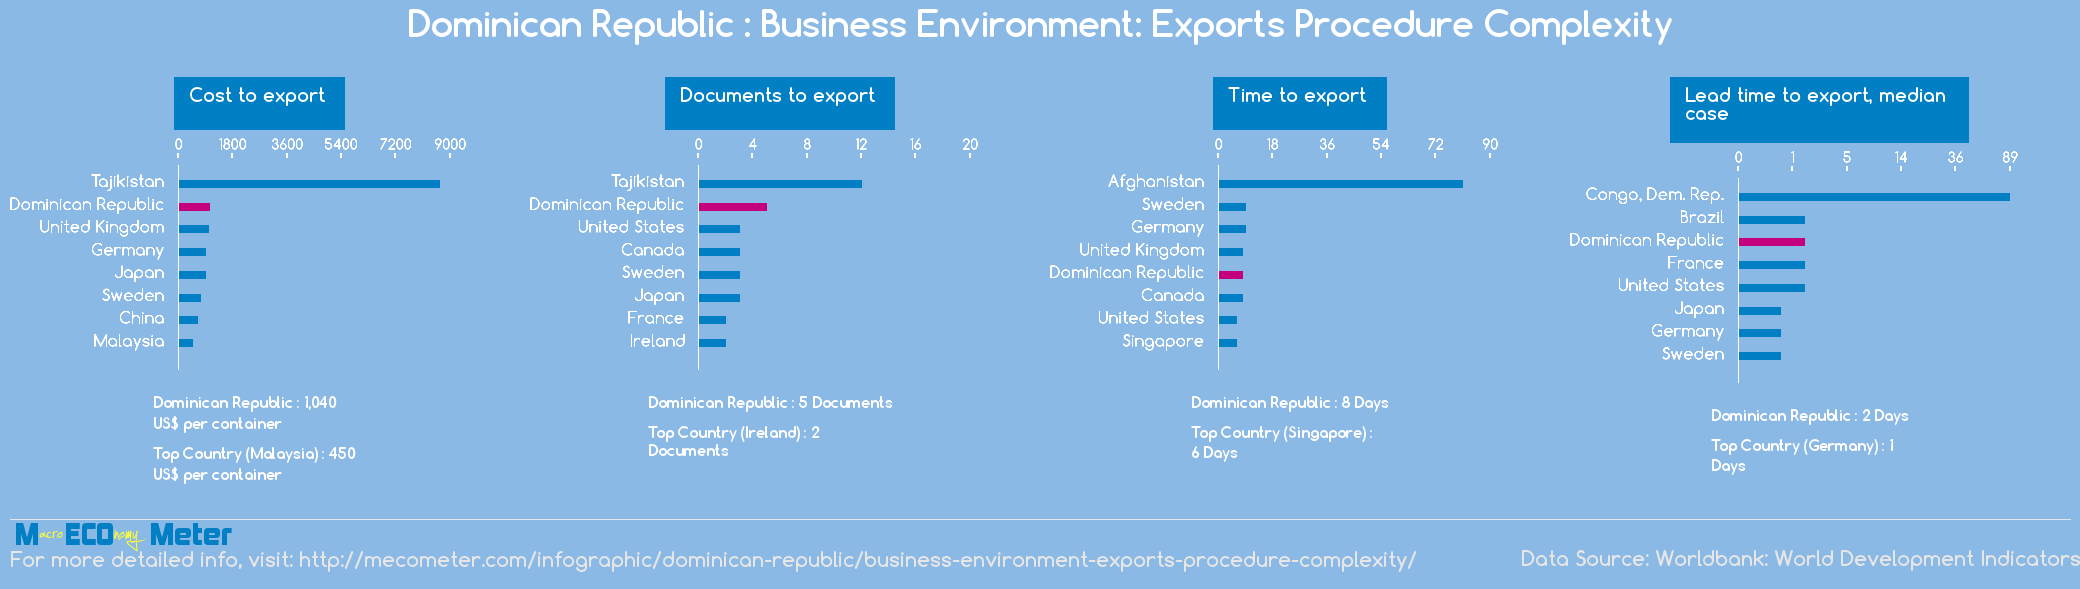 Dominican Republic : Business Environment: Exports Procedure Complexity